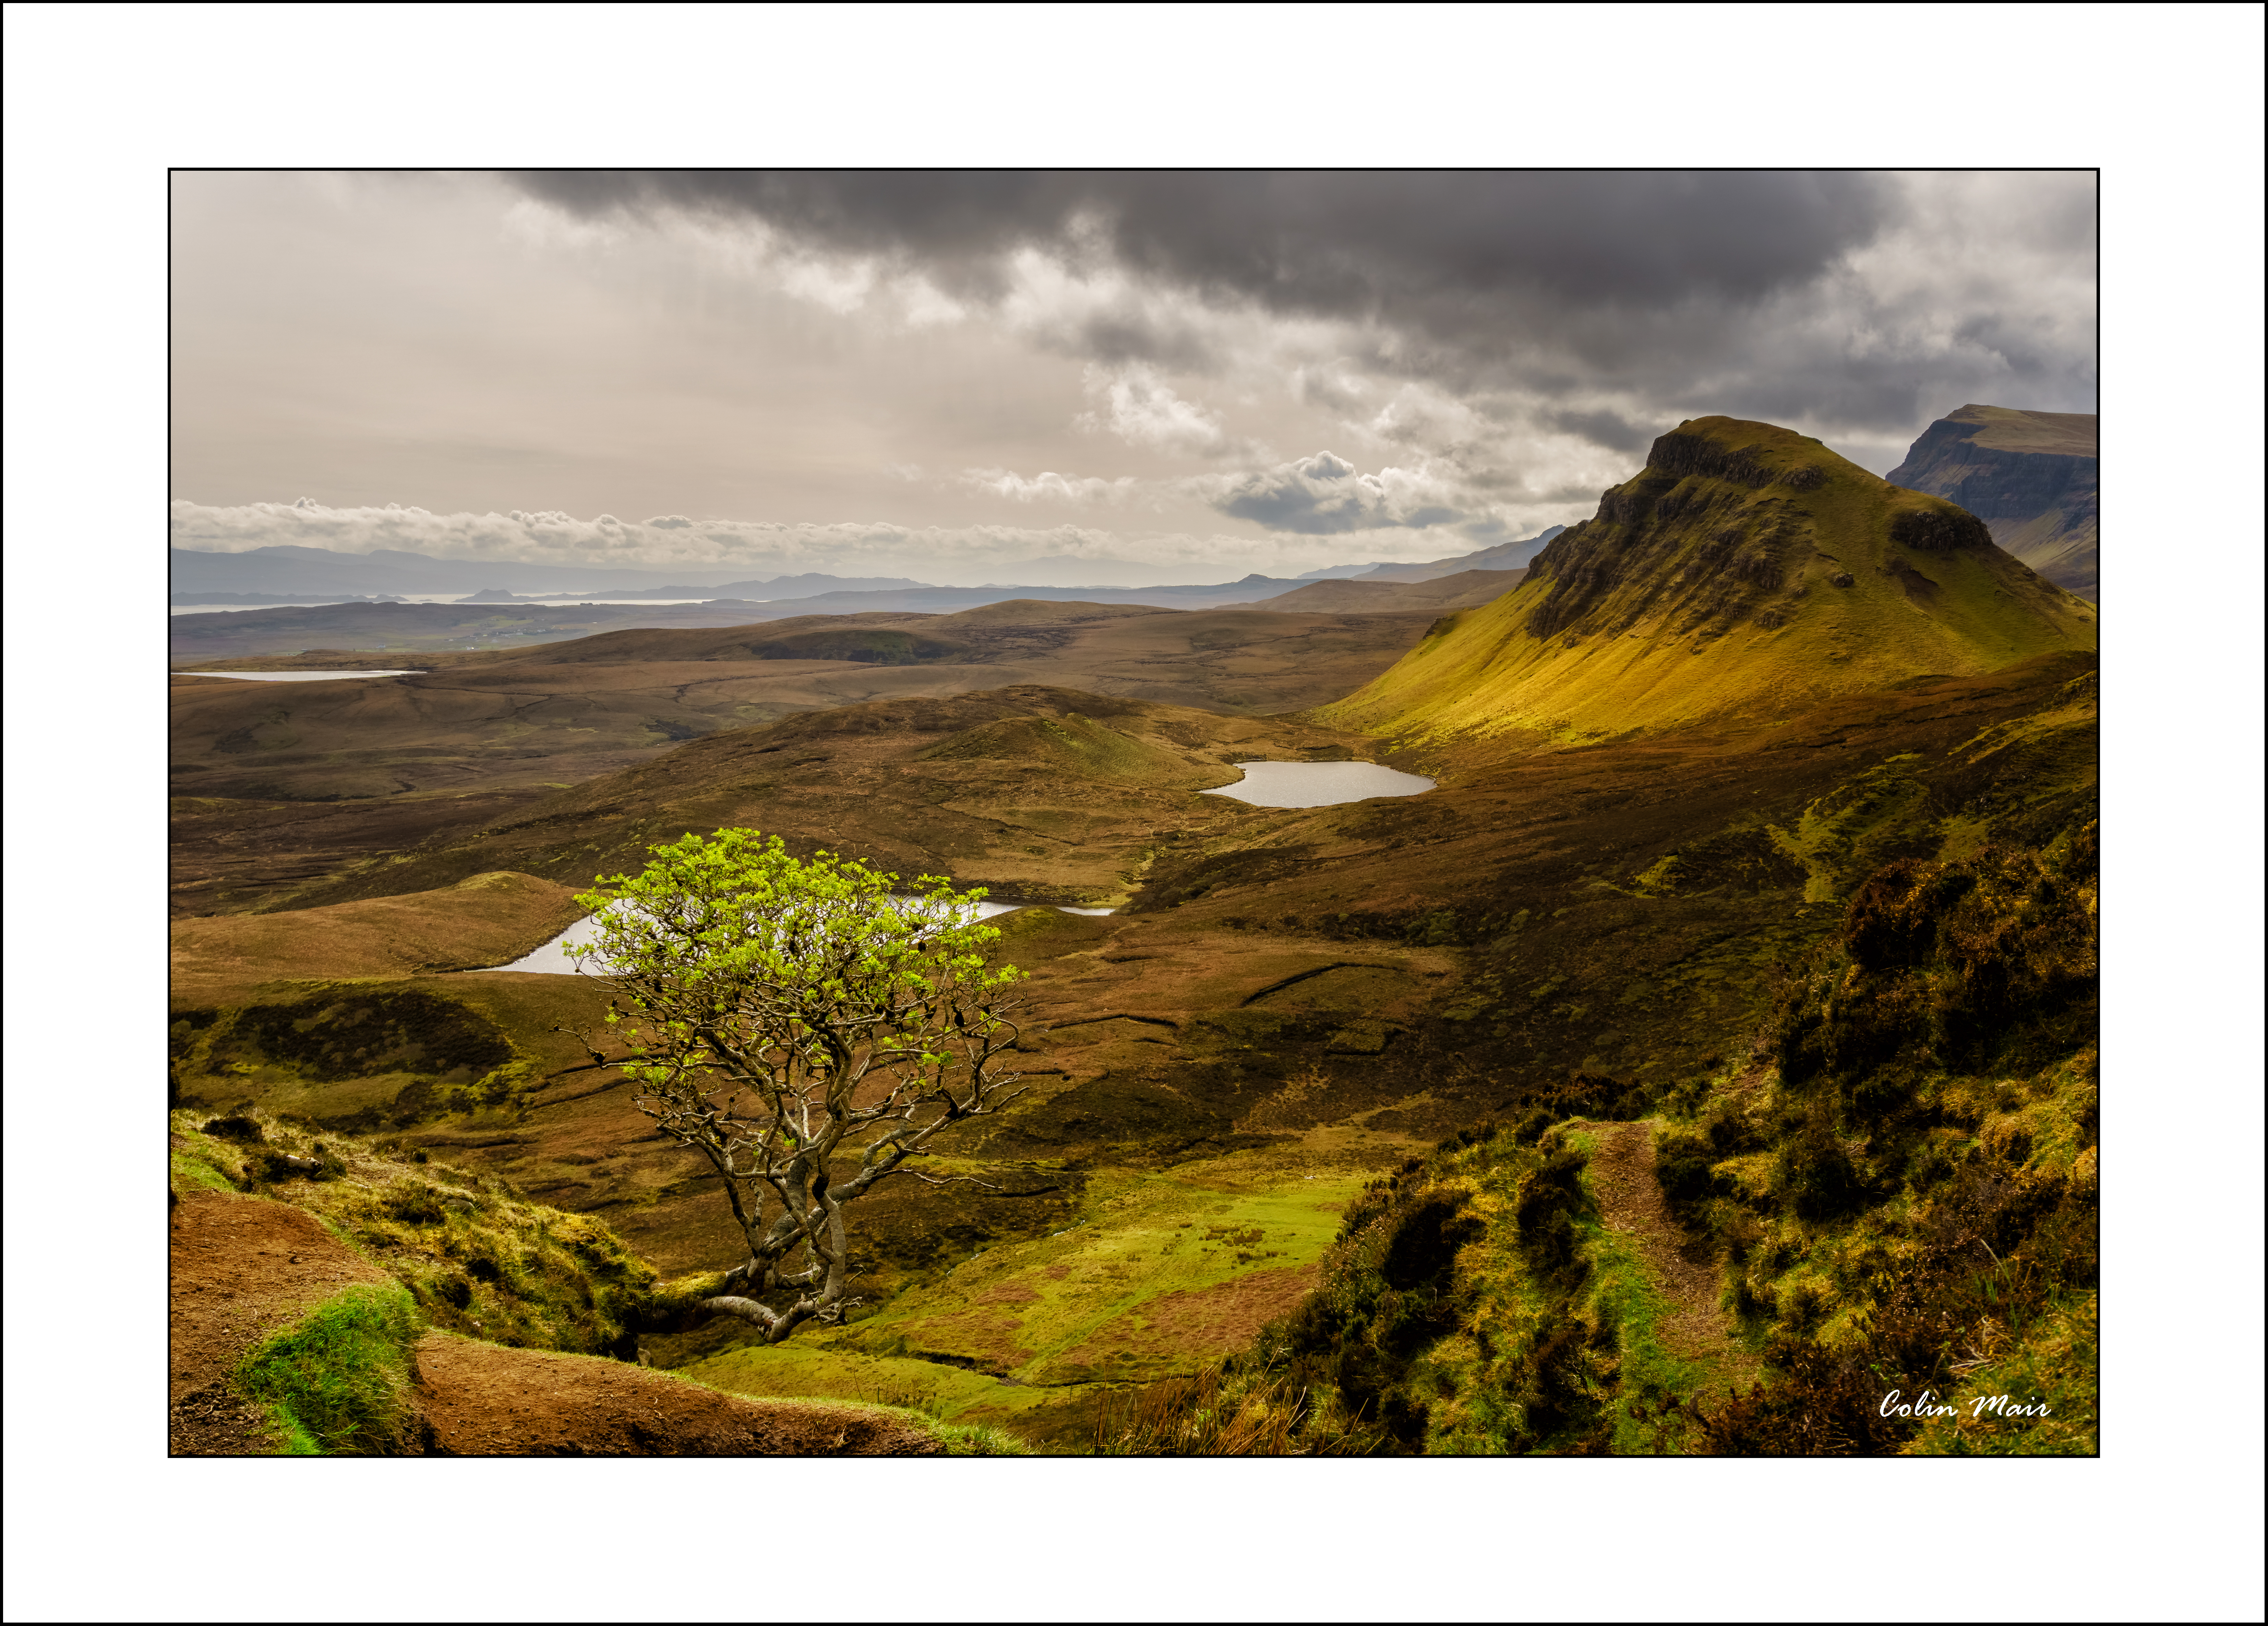 Lone Tree - 2019-04-28th, Skye, Scotland, UK